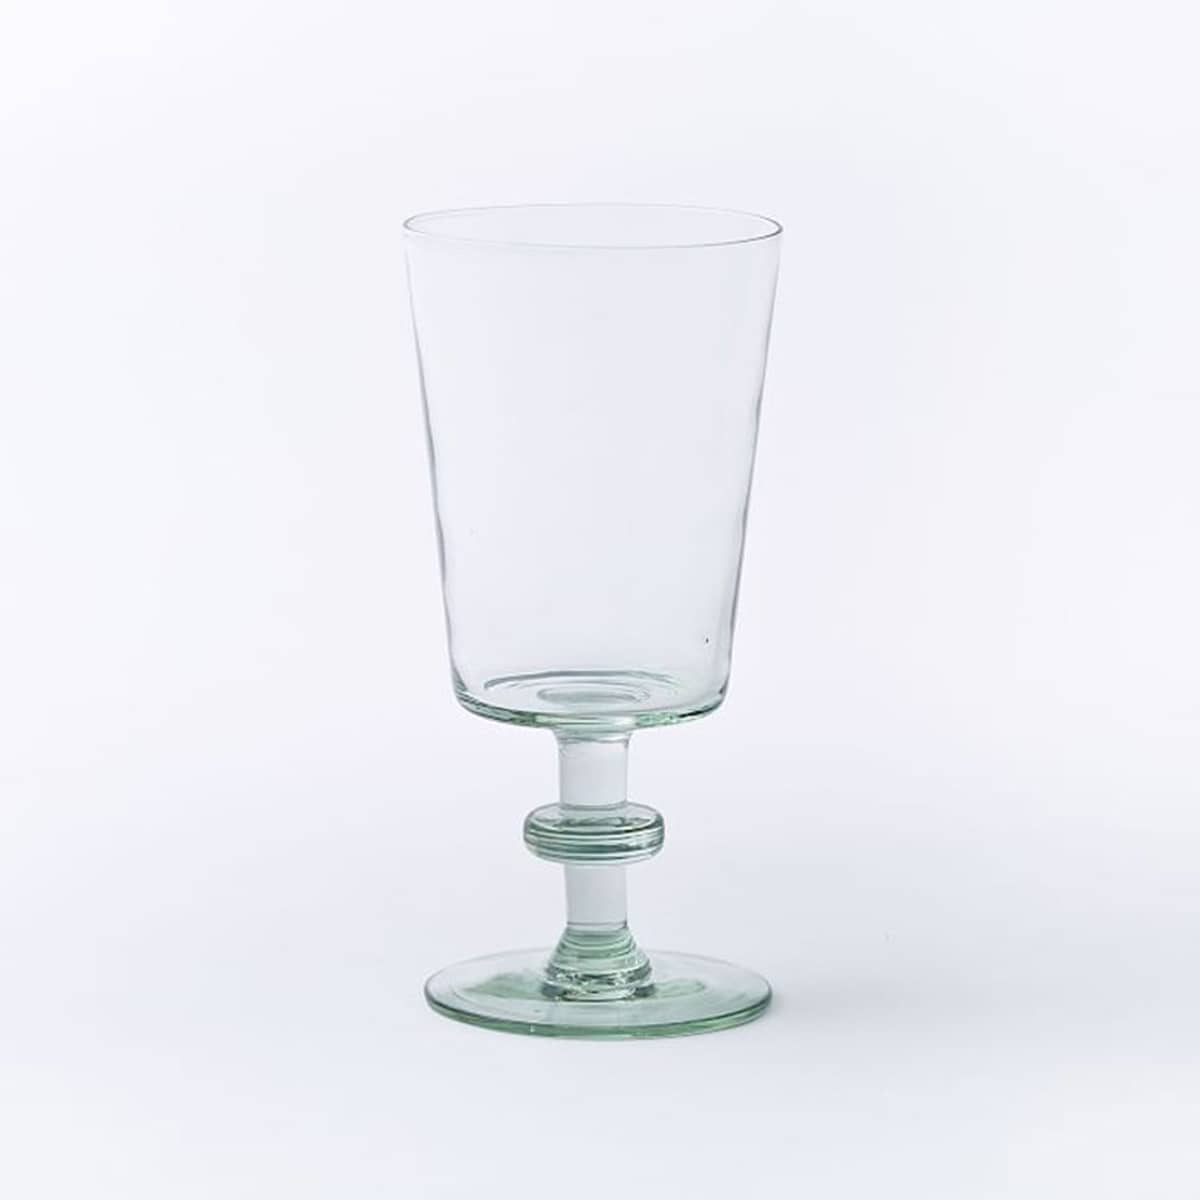 10 Wine Glasses That Can Go in the Dishwasher: gallery image 6